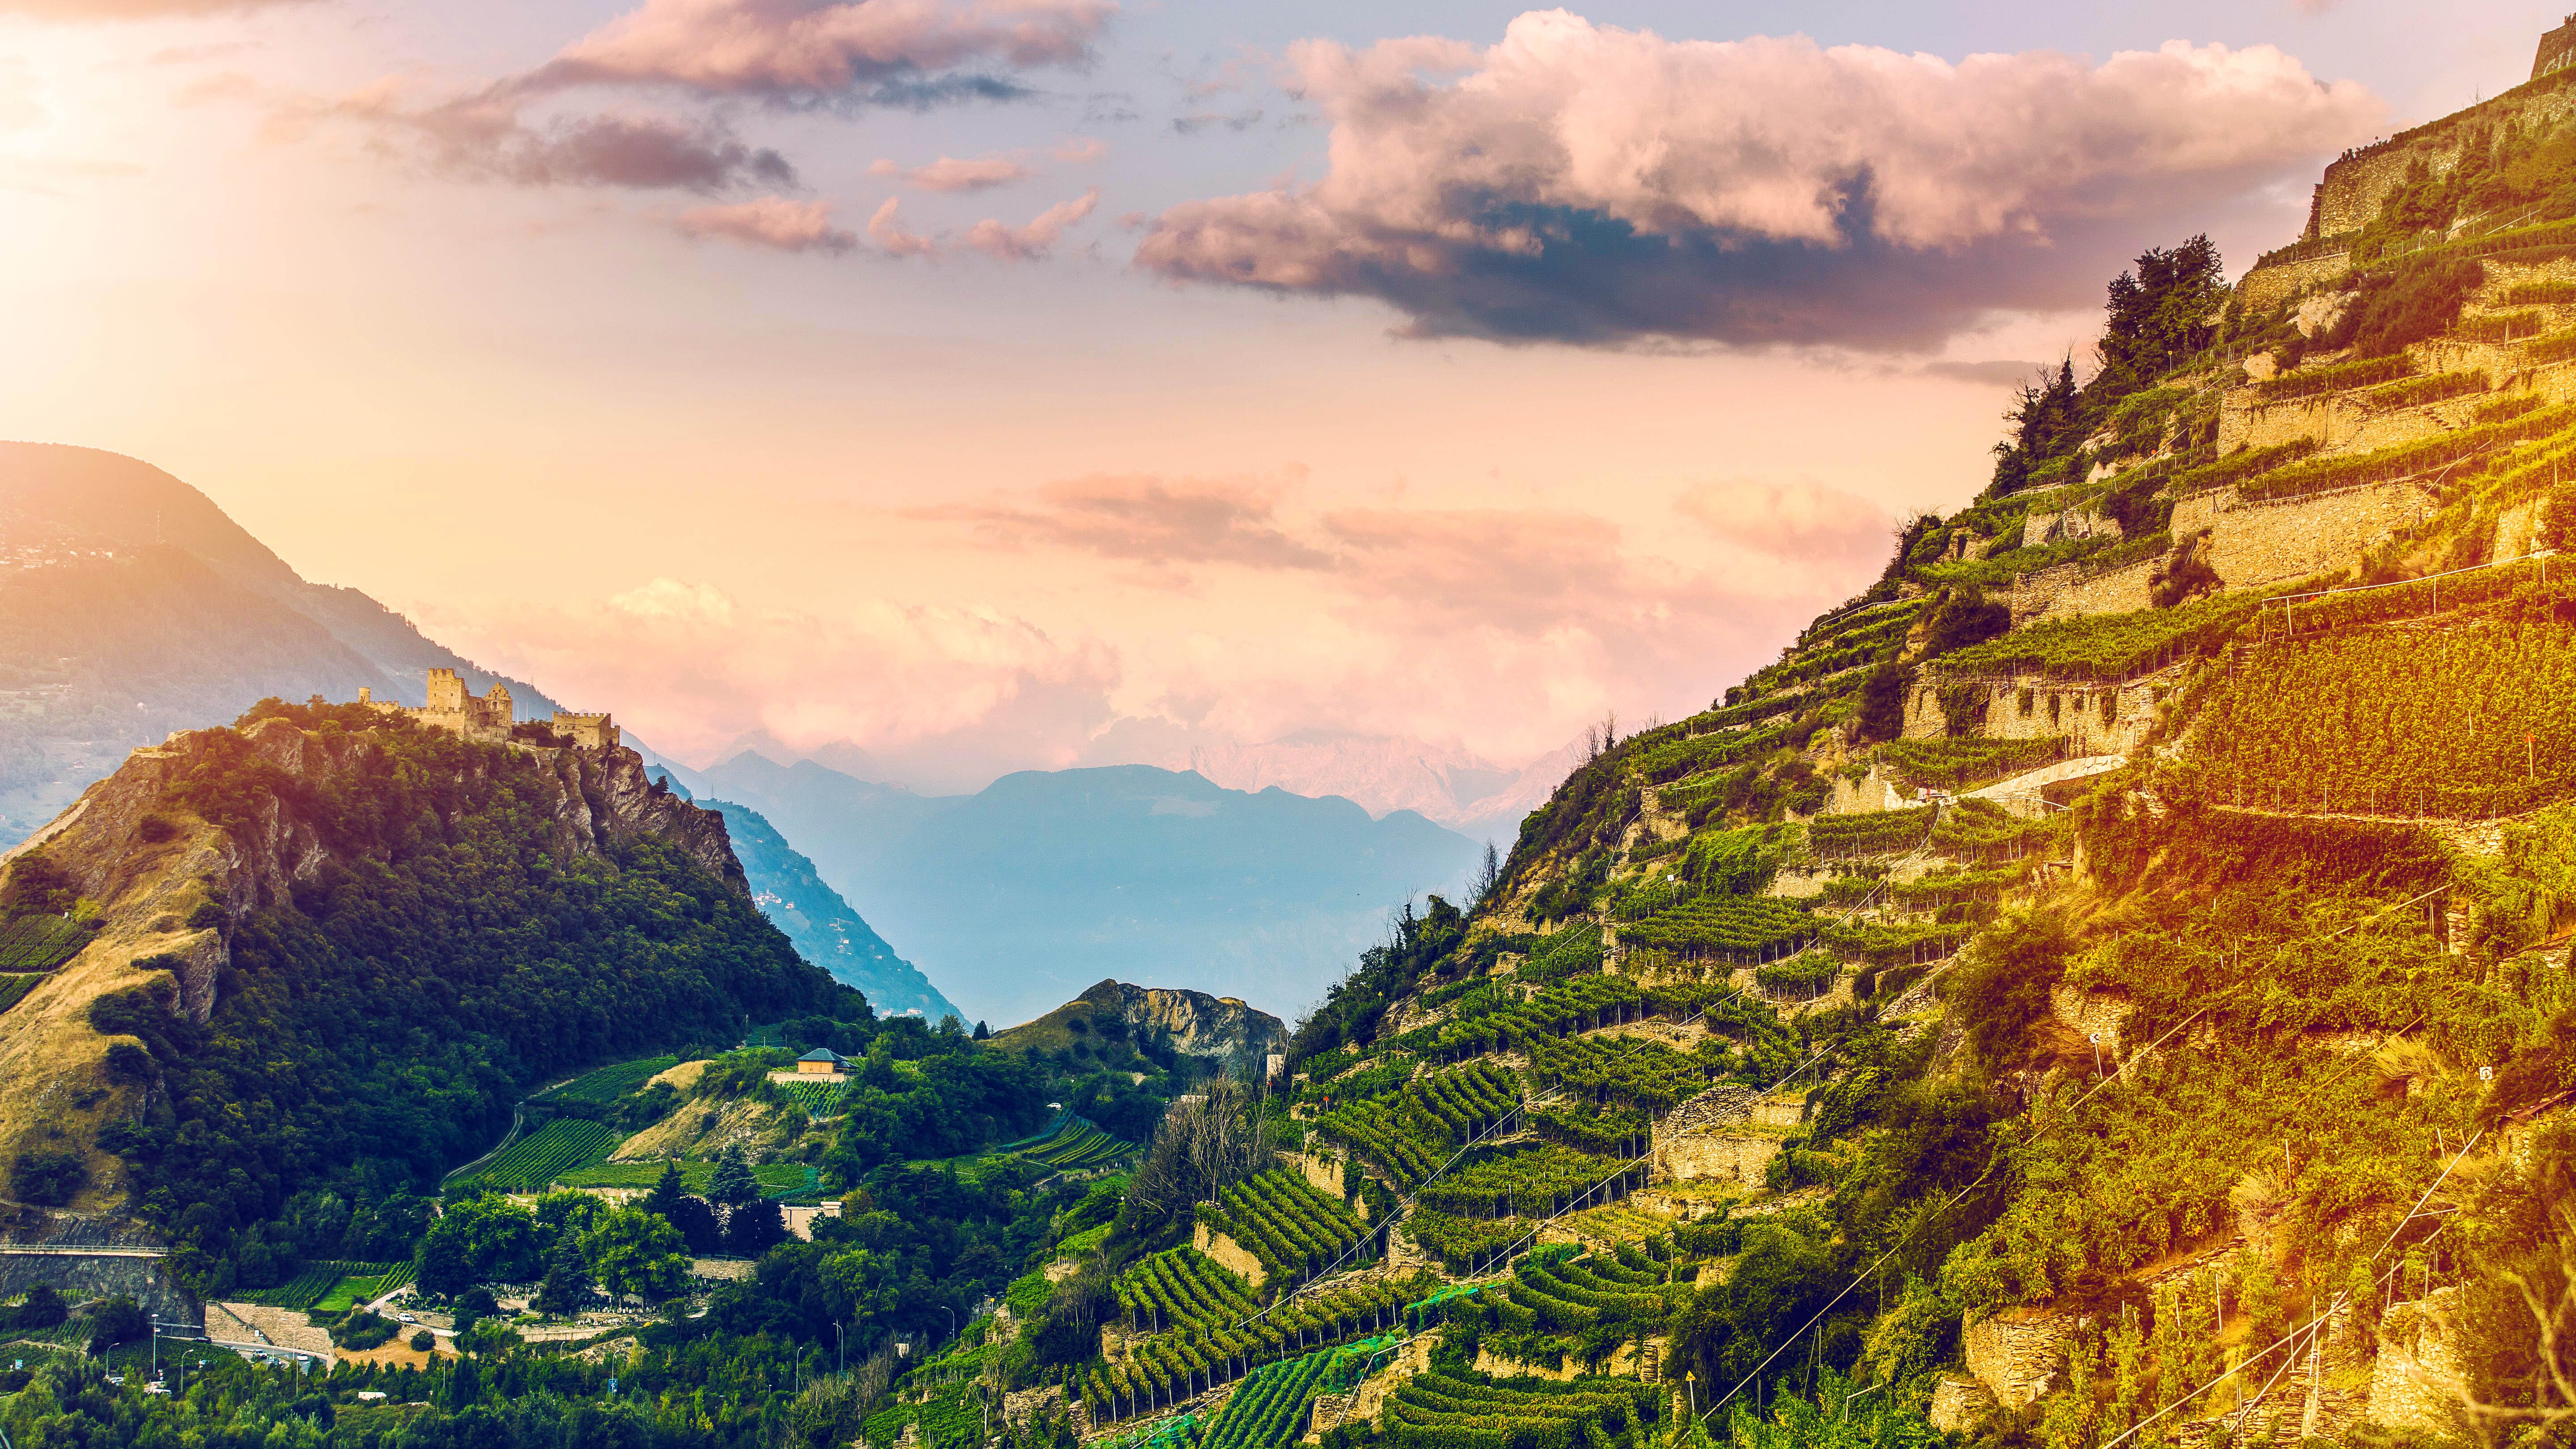 From beautiful hillside vineyards to forests and meadows basking in the sun. This first stage of the Valais Cycling Tour begins at Sion, the capital of Valais, and takes you through the mountain town of Anzère to the famous mountain resort of Crans-Montana.